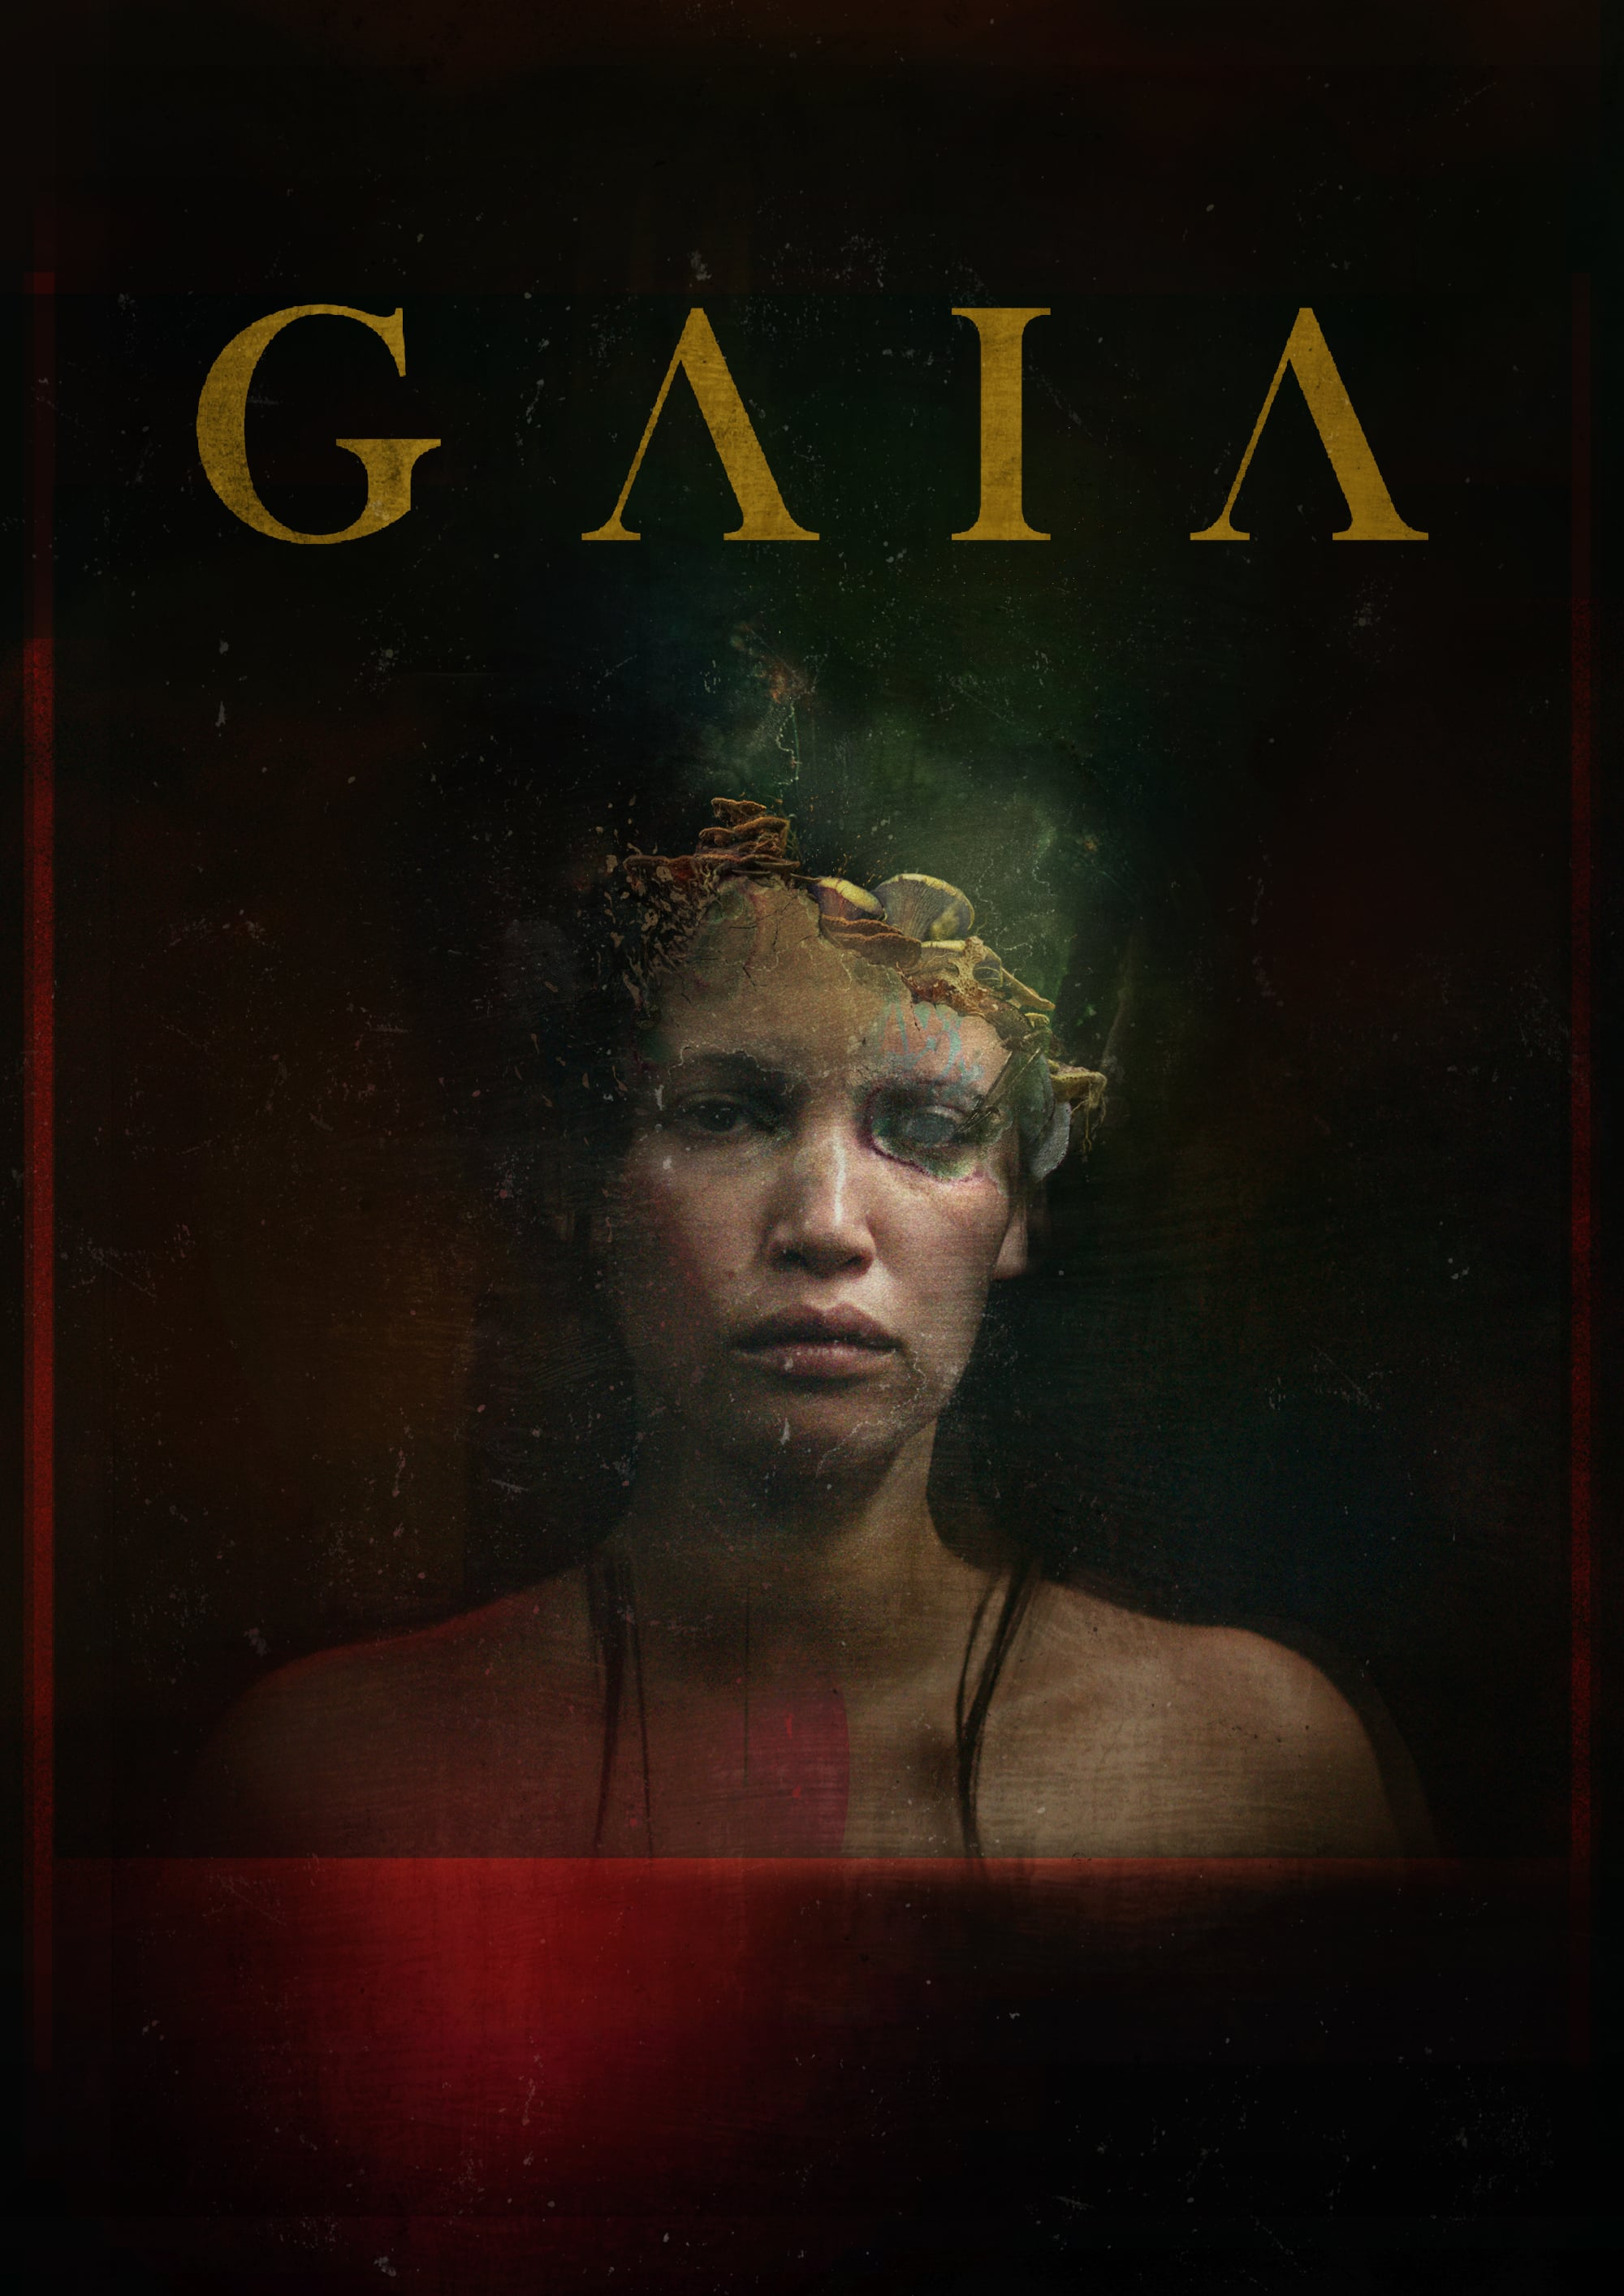 Poster for Gaia